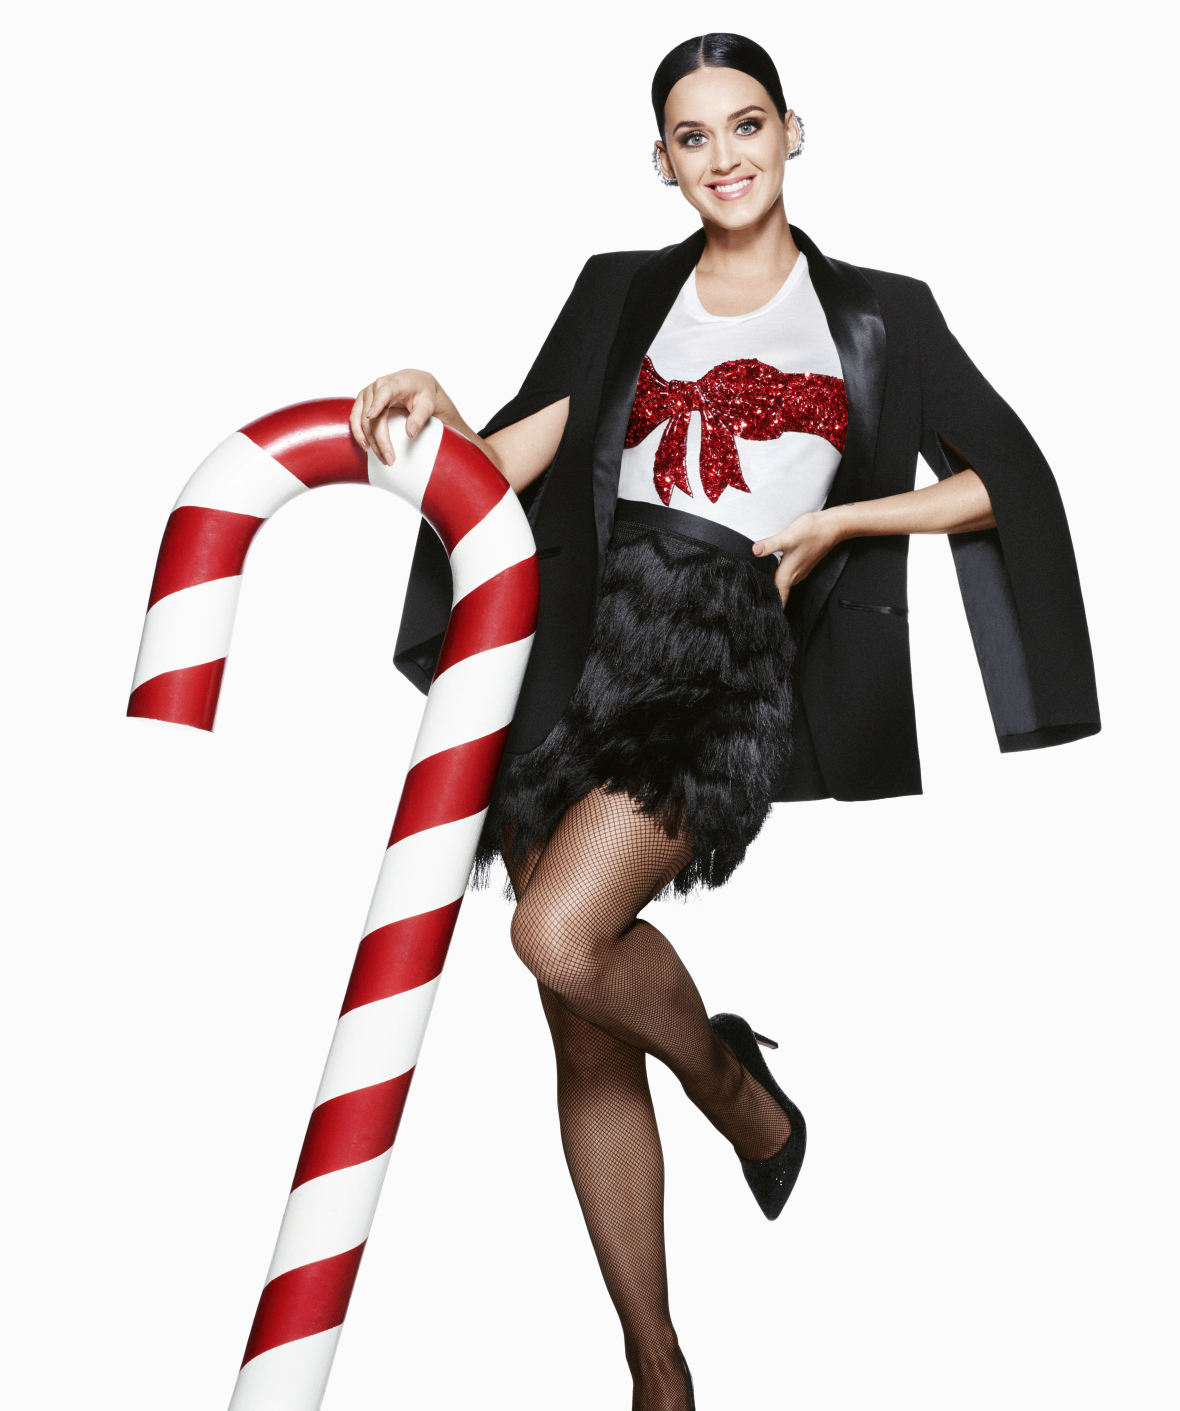 Katy Perry H&M - Embed 1